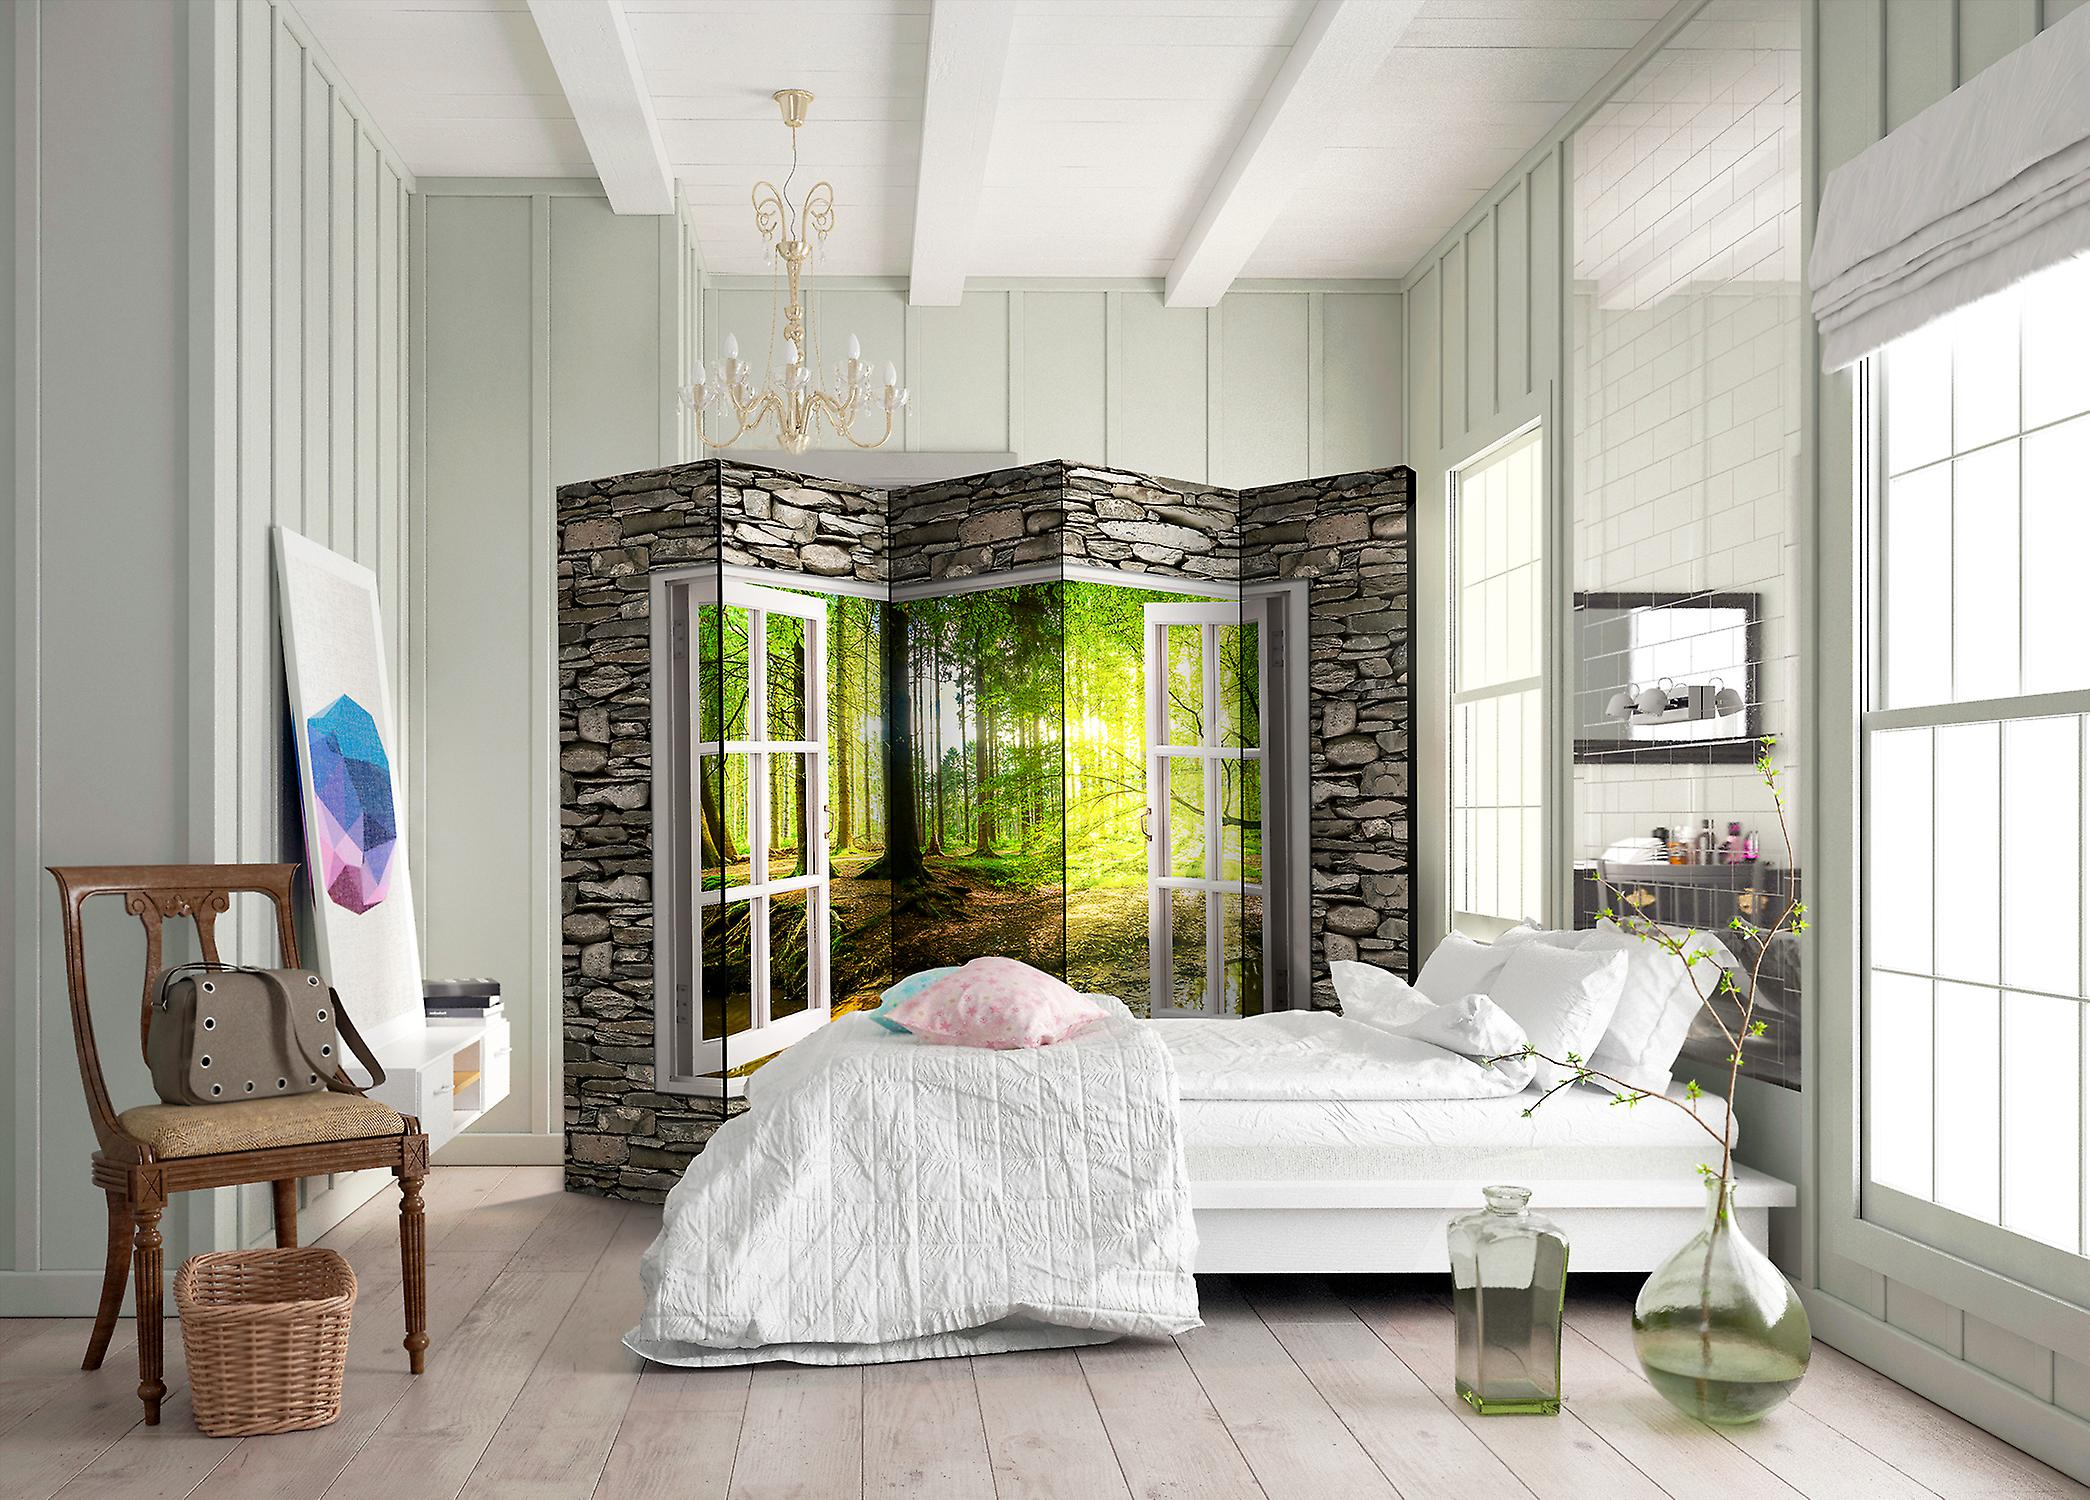 Iiroom Room Dividers DividerMorning Forest Iiroom Room Forest DividerMorning XTiOPkZu